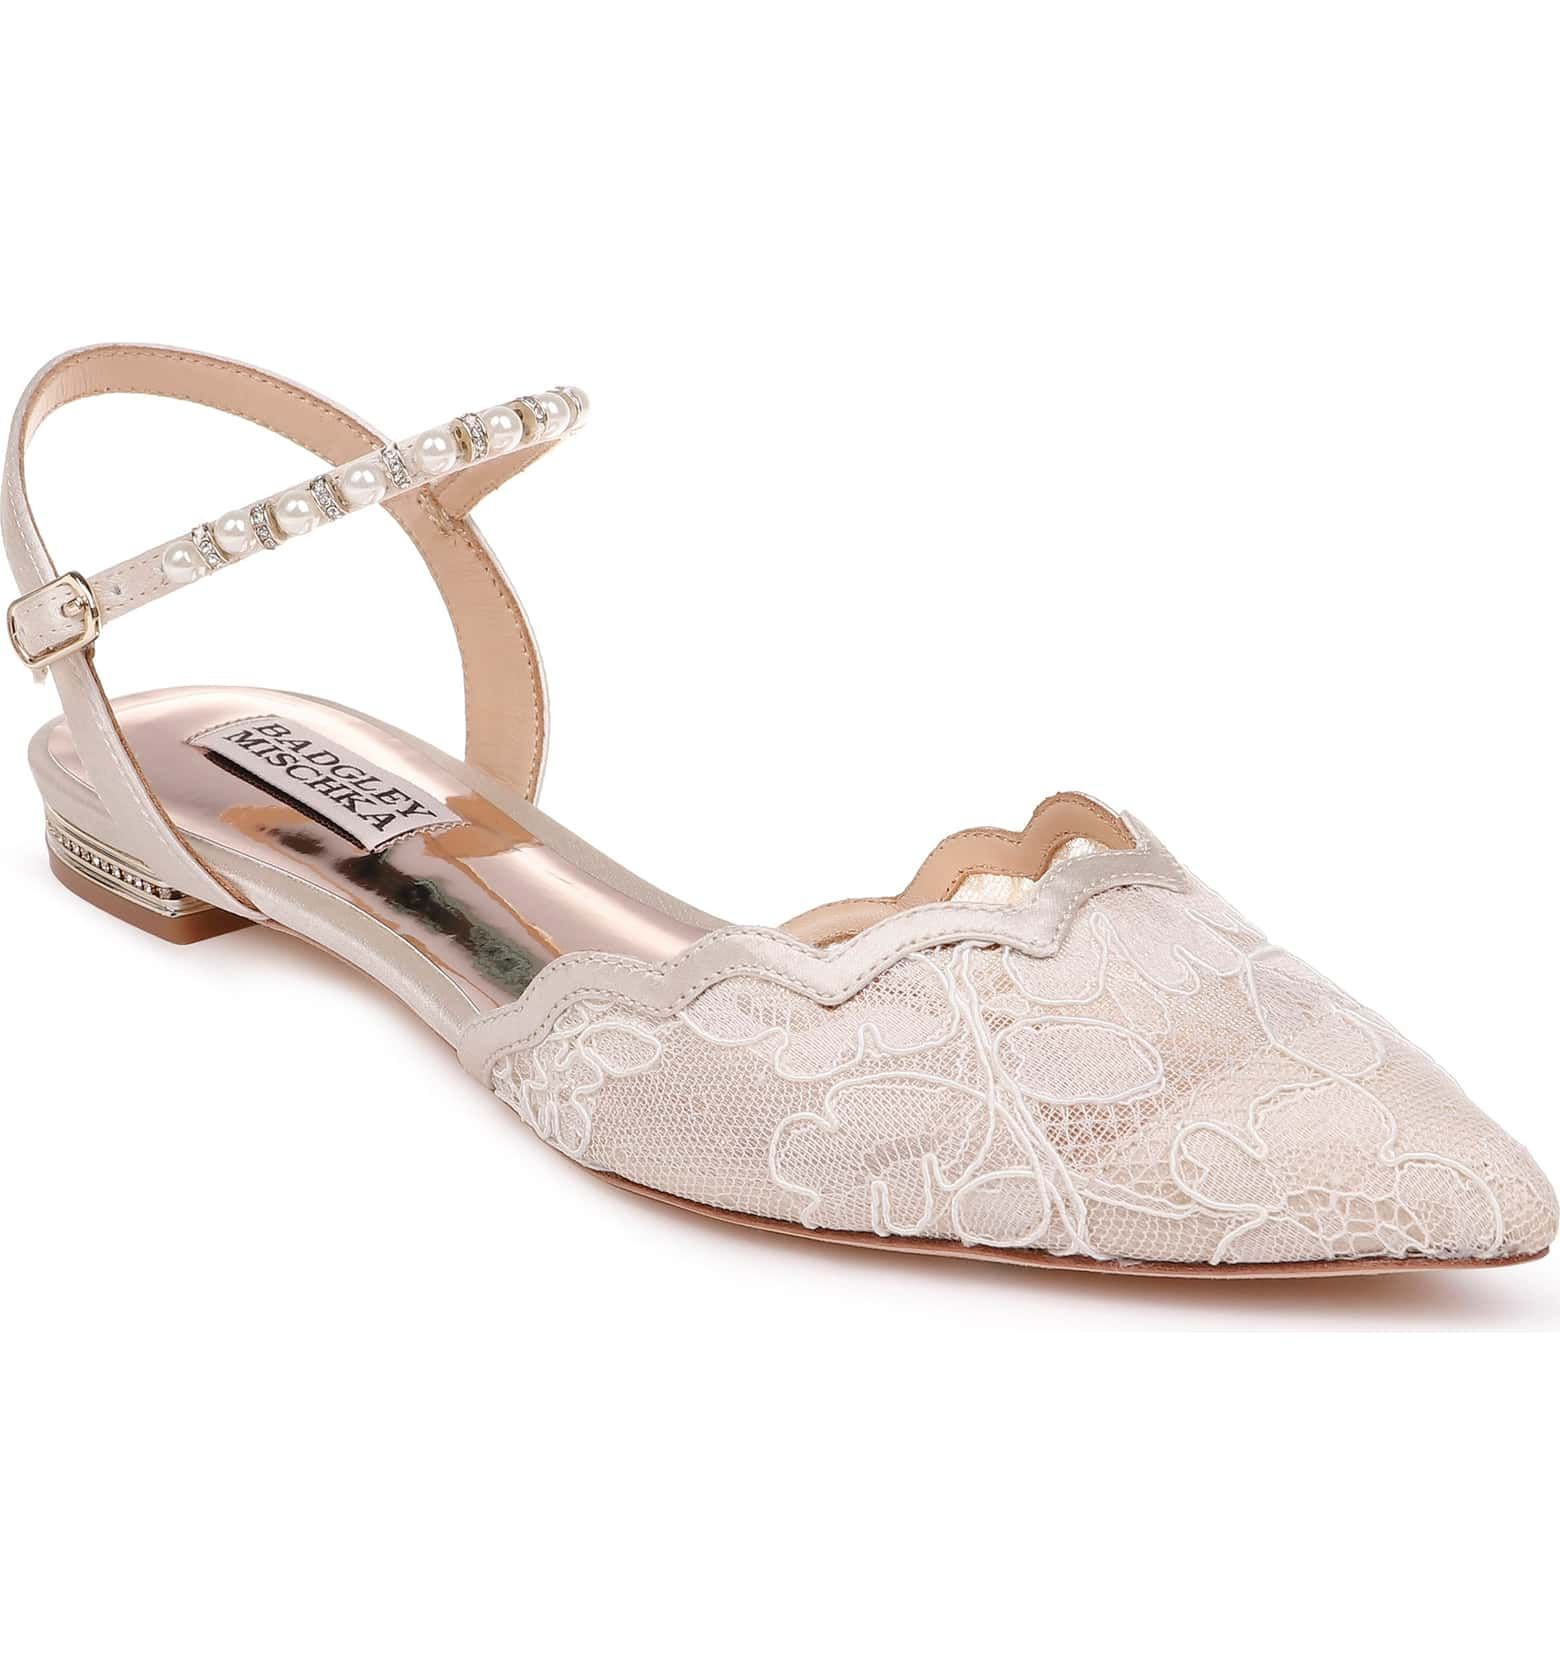 70c1b8ce04 Badgley Mischka Lennon Embellished Skimmer Flat, Main, color, IVORY FABRIC/  SATIN